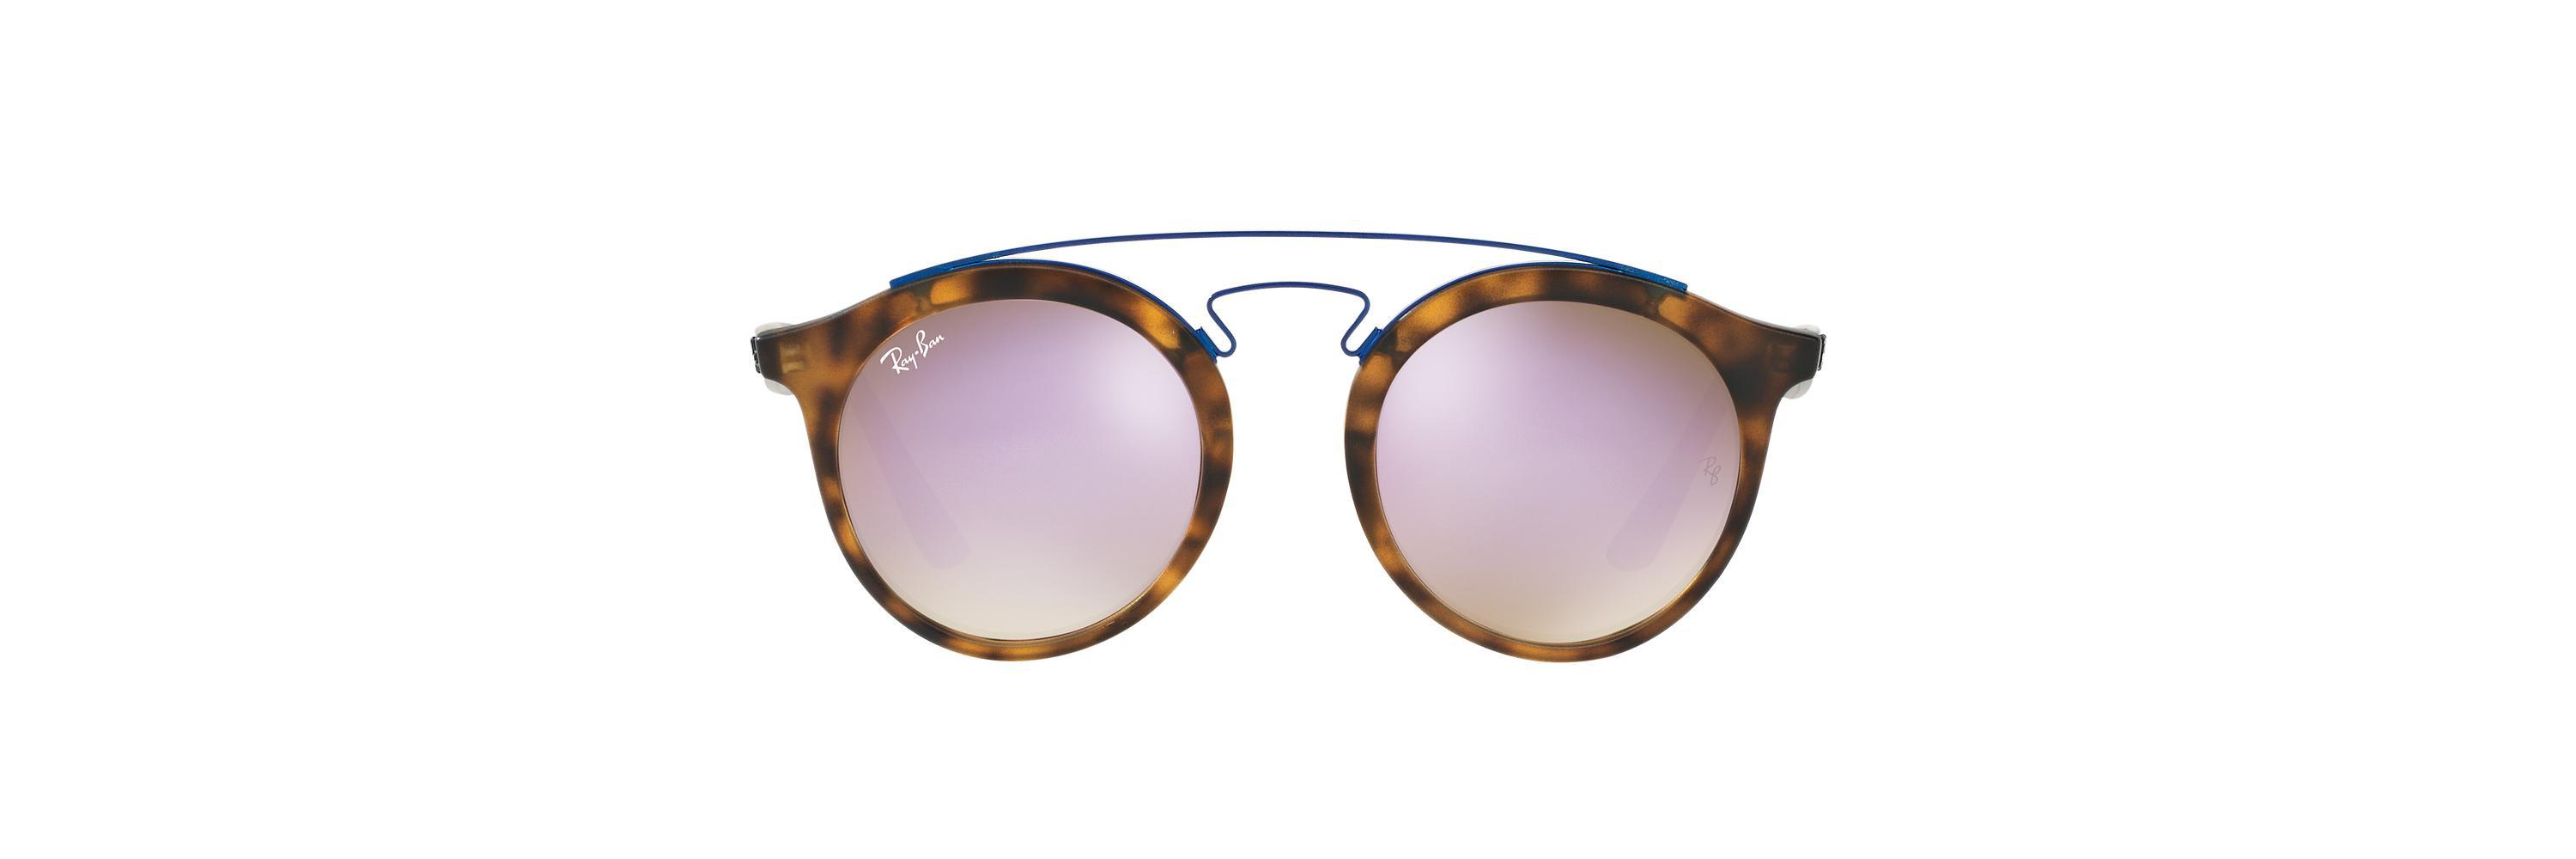 c66a39082de987 Lyst - Ray-Ban Rb4256 49 Gatsby I Mirror Collection for Men